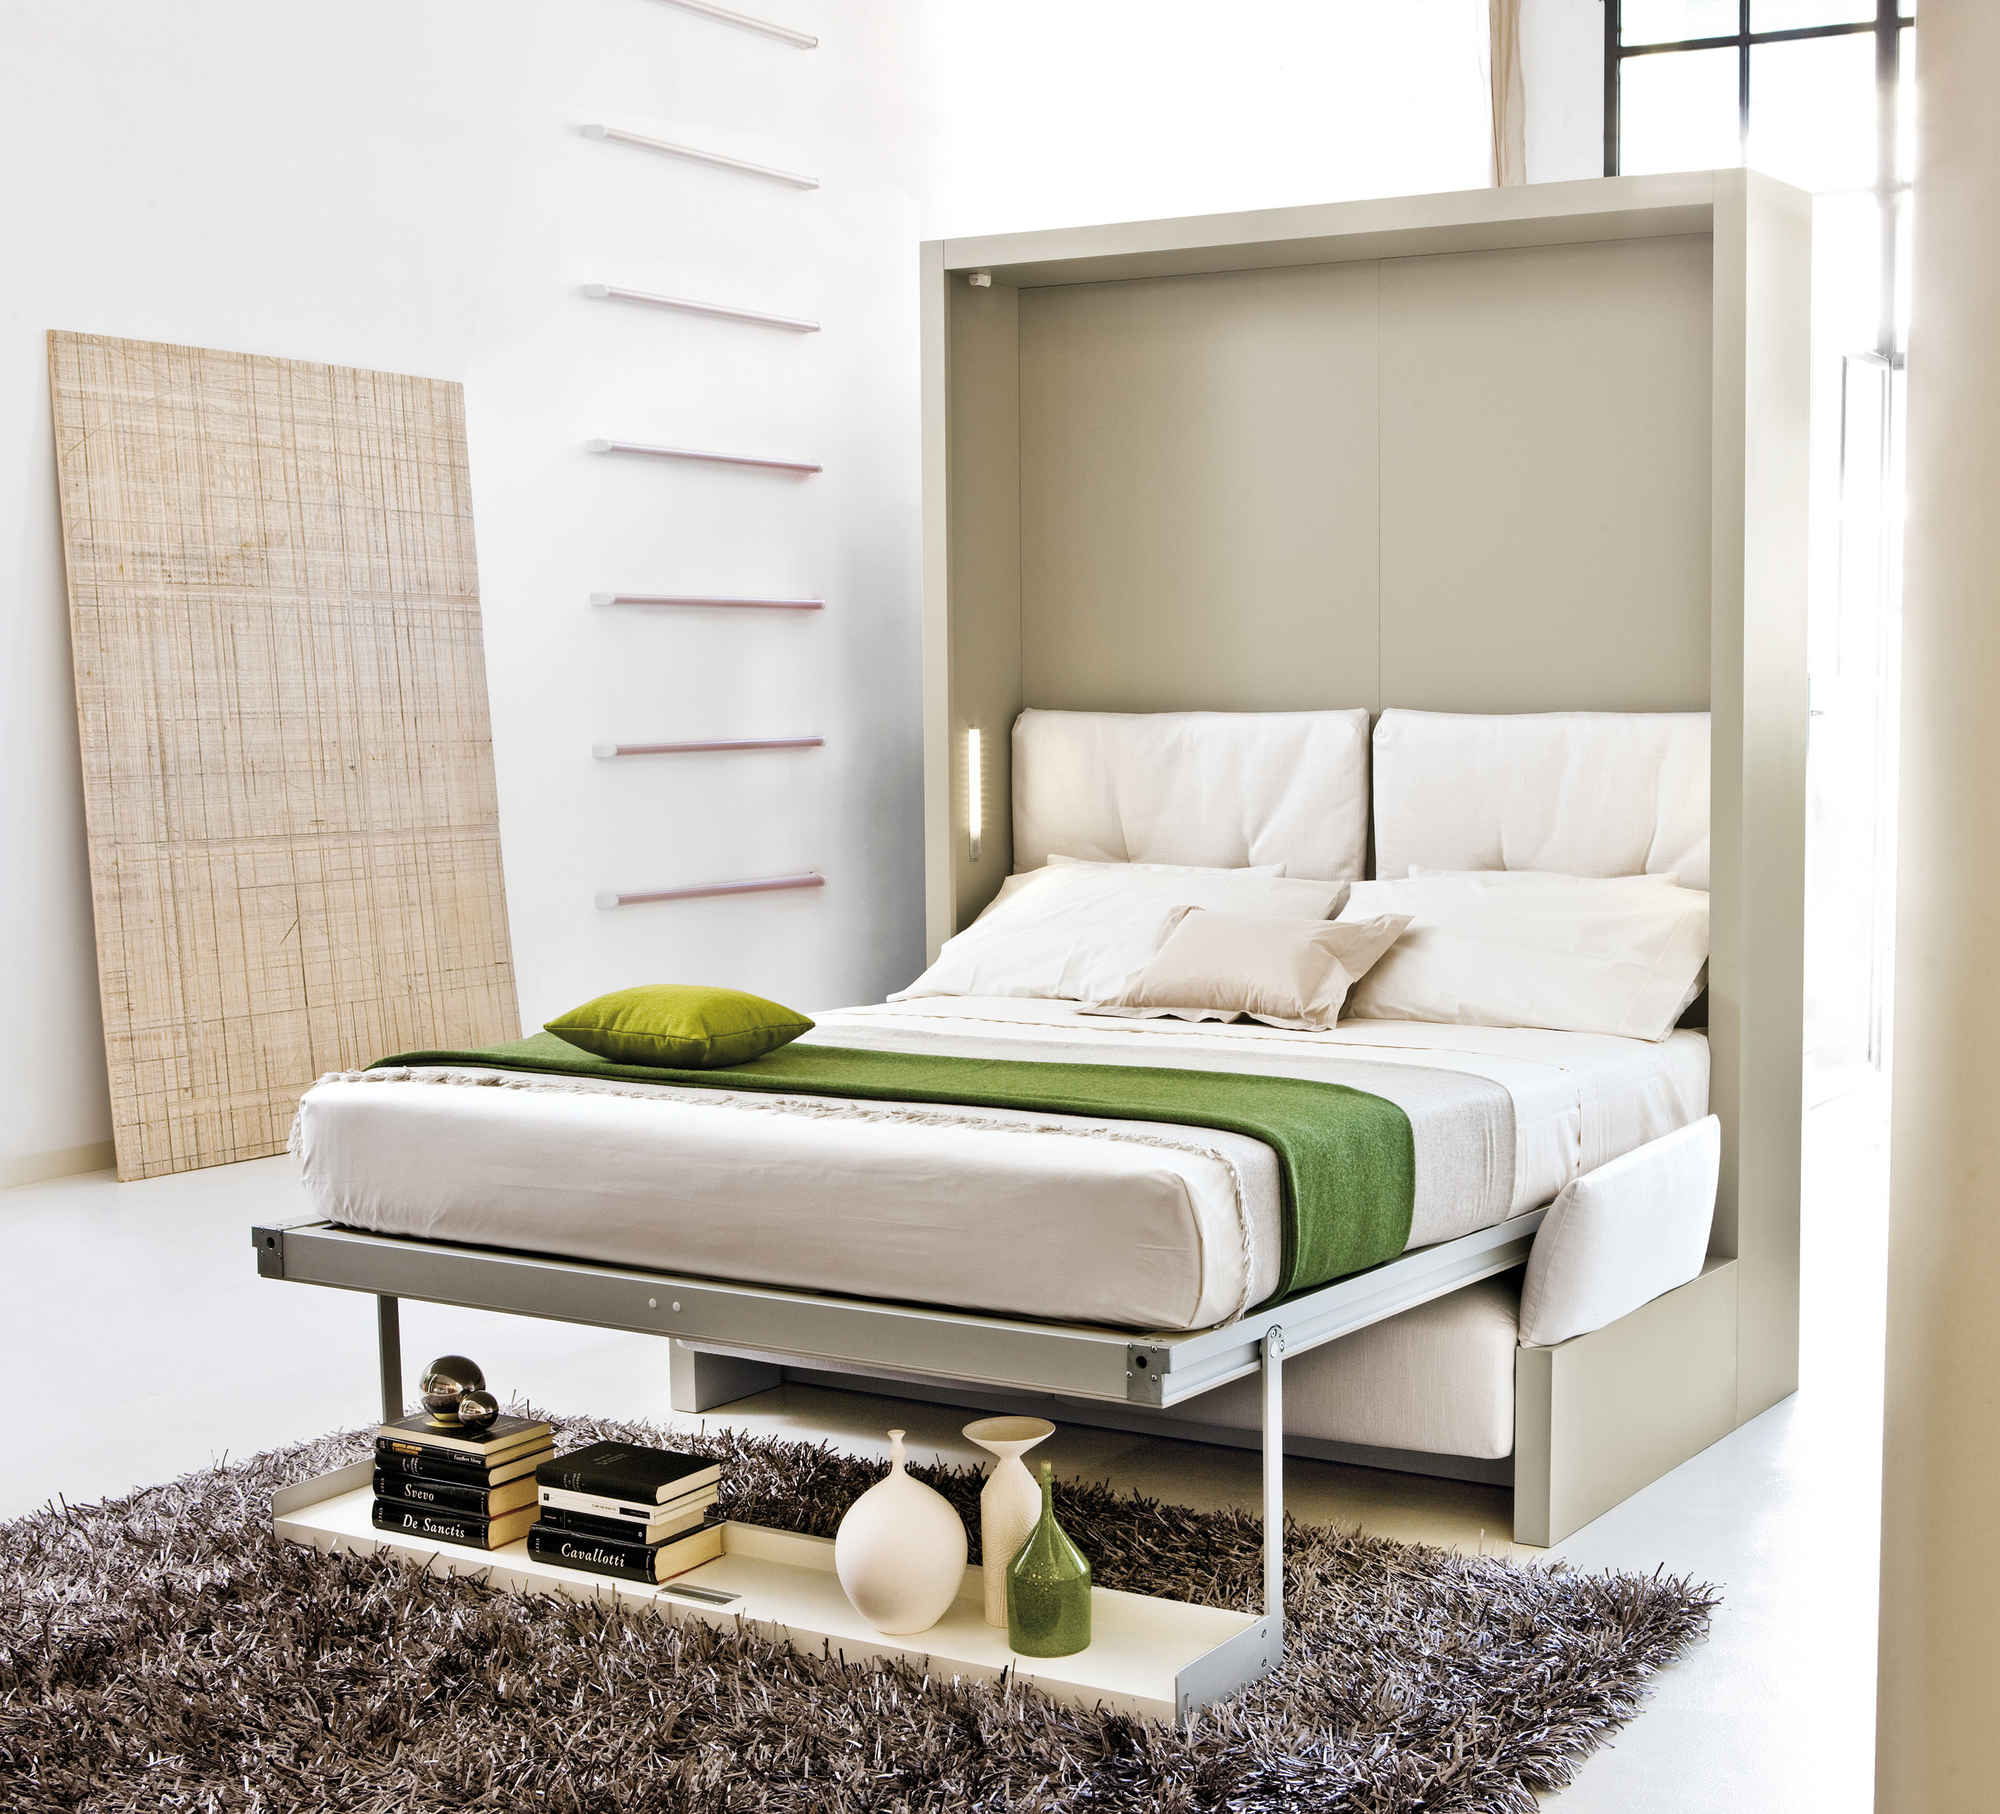 Murphy beds chicago homesfeed murphy bed pillows rug table books vase amipublicfo Images